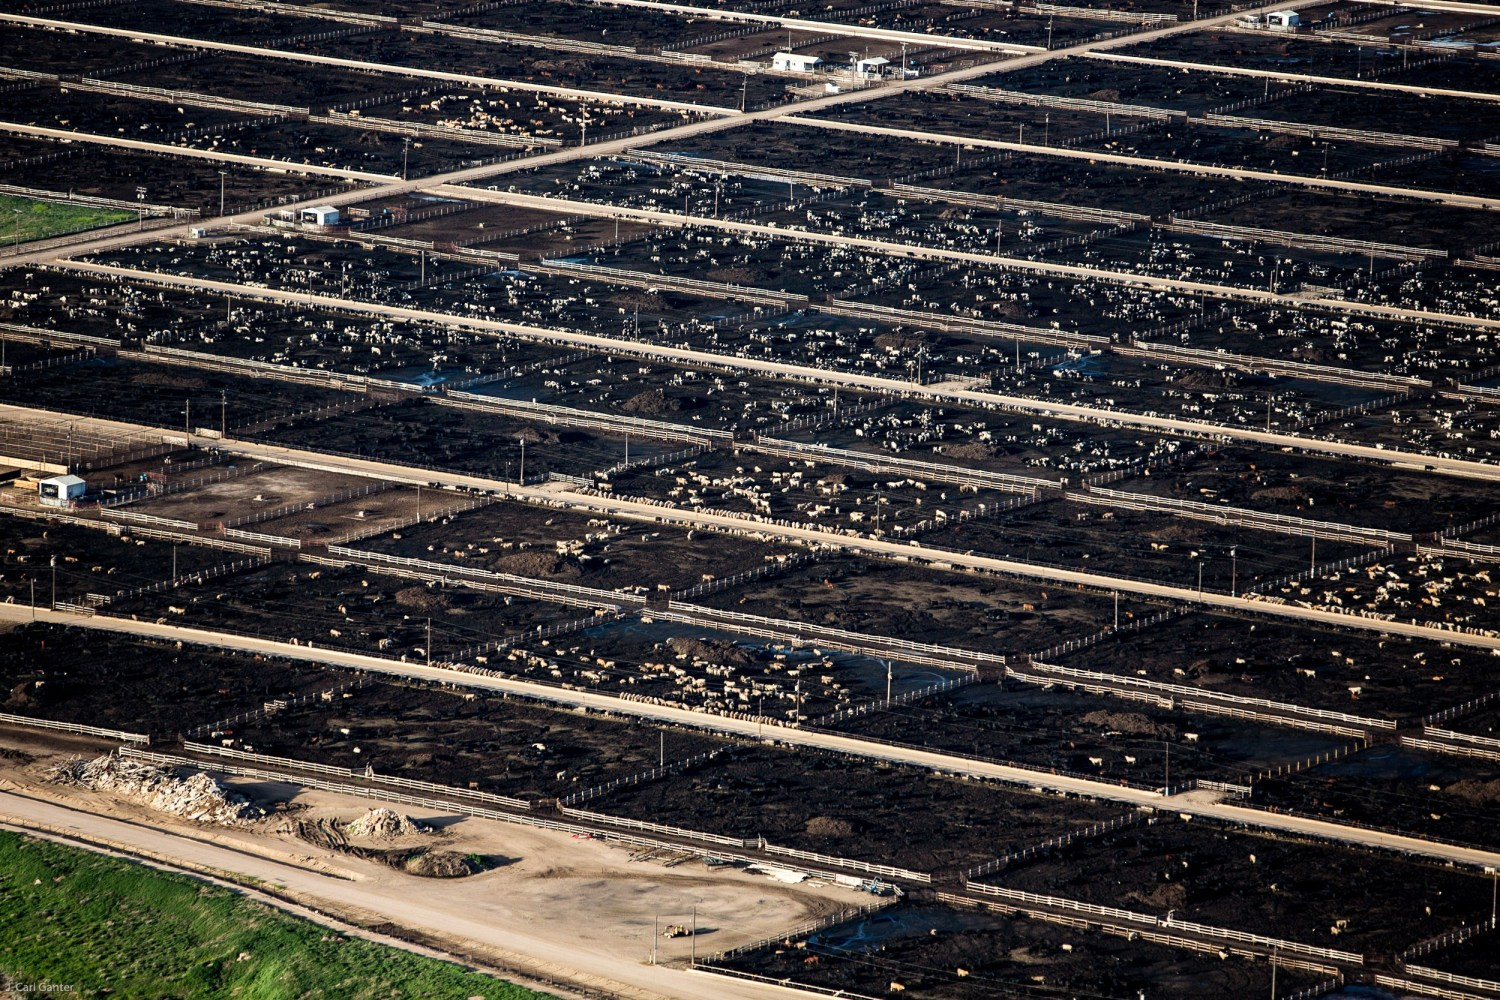 A cattle feedlot in Weld County, Colorado. Photo © J. Carl Ganter / Circle of Blue